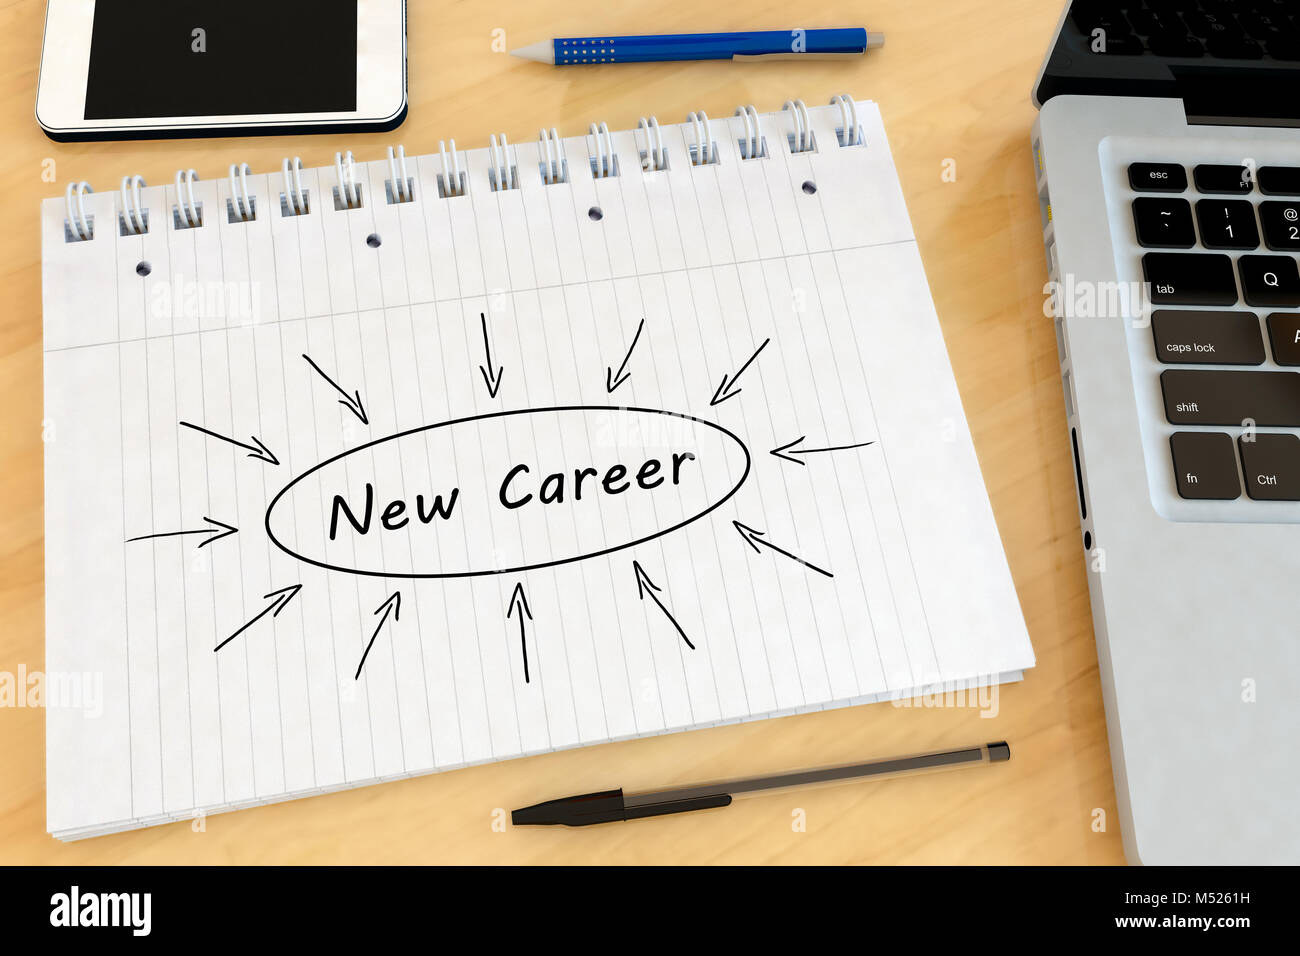 New Career text concept - Stock Image